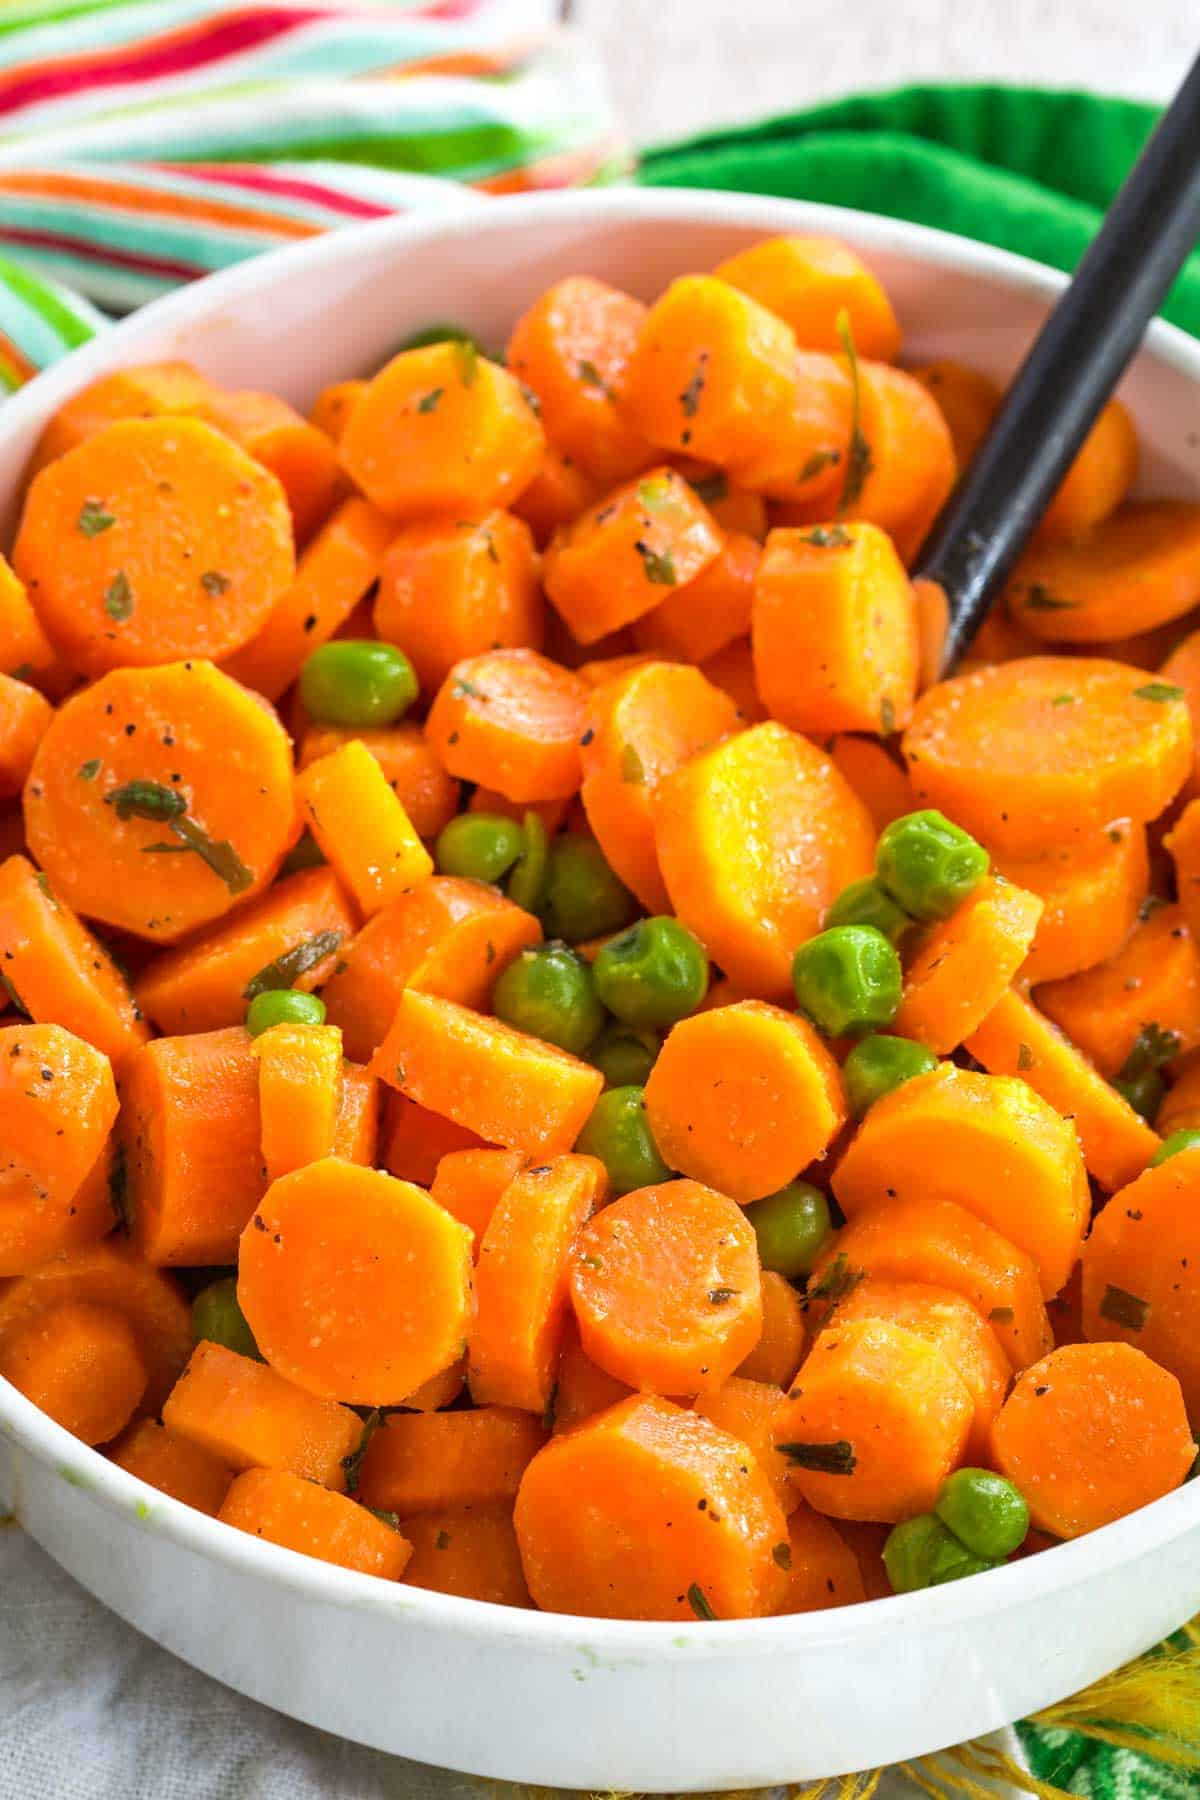 closeup of a bowl of honey dijon peas and carrots flecked with bits of parsley